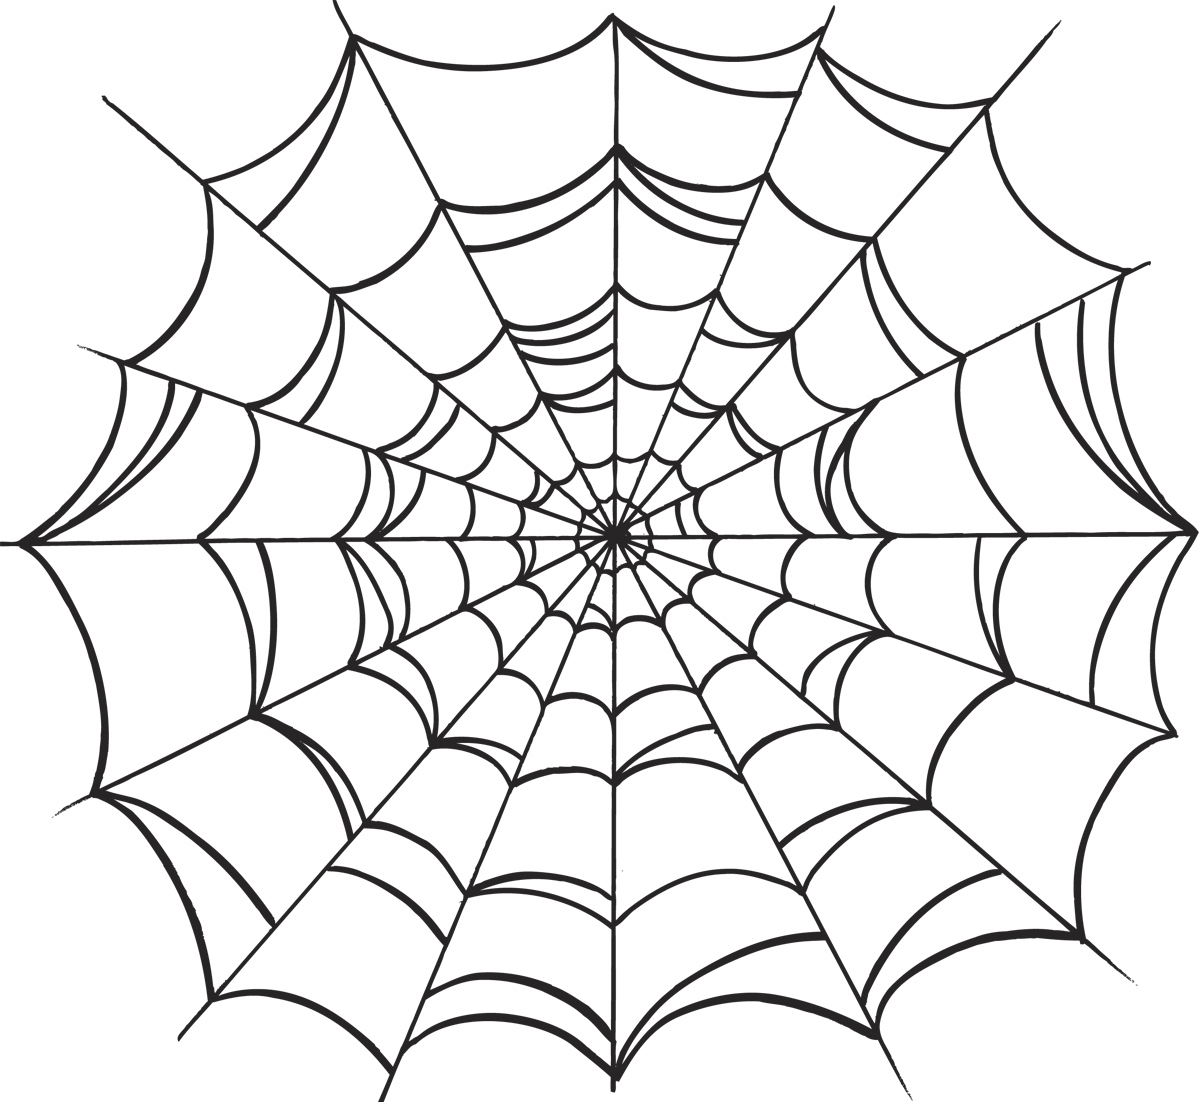 Drawn spider web Pinterest tattoo web drawing spider